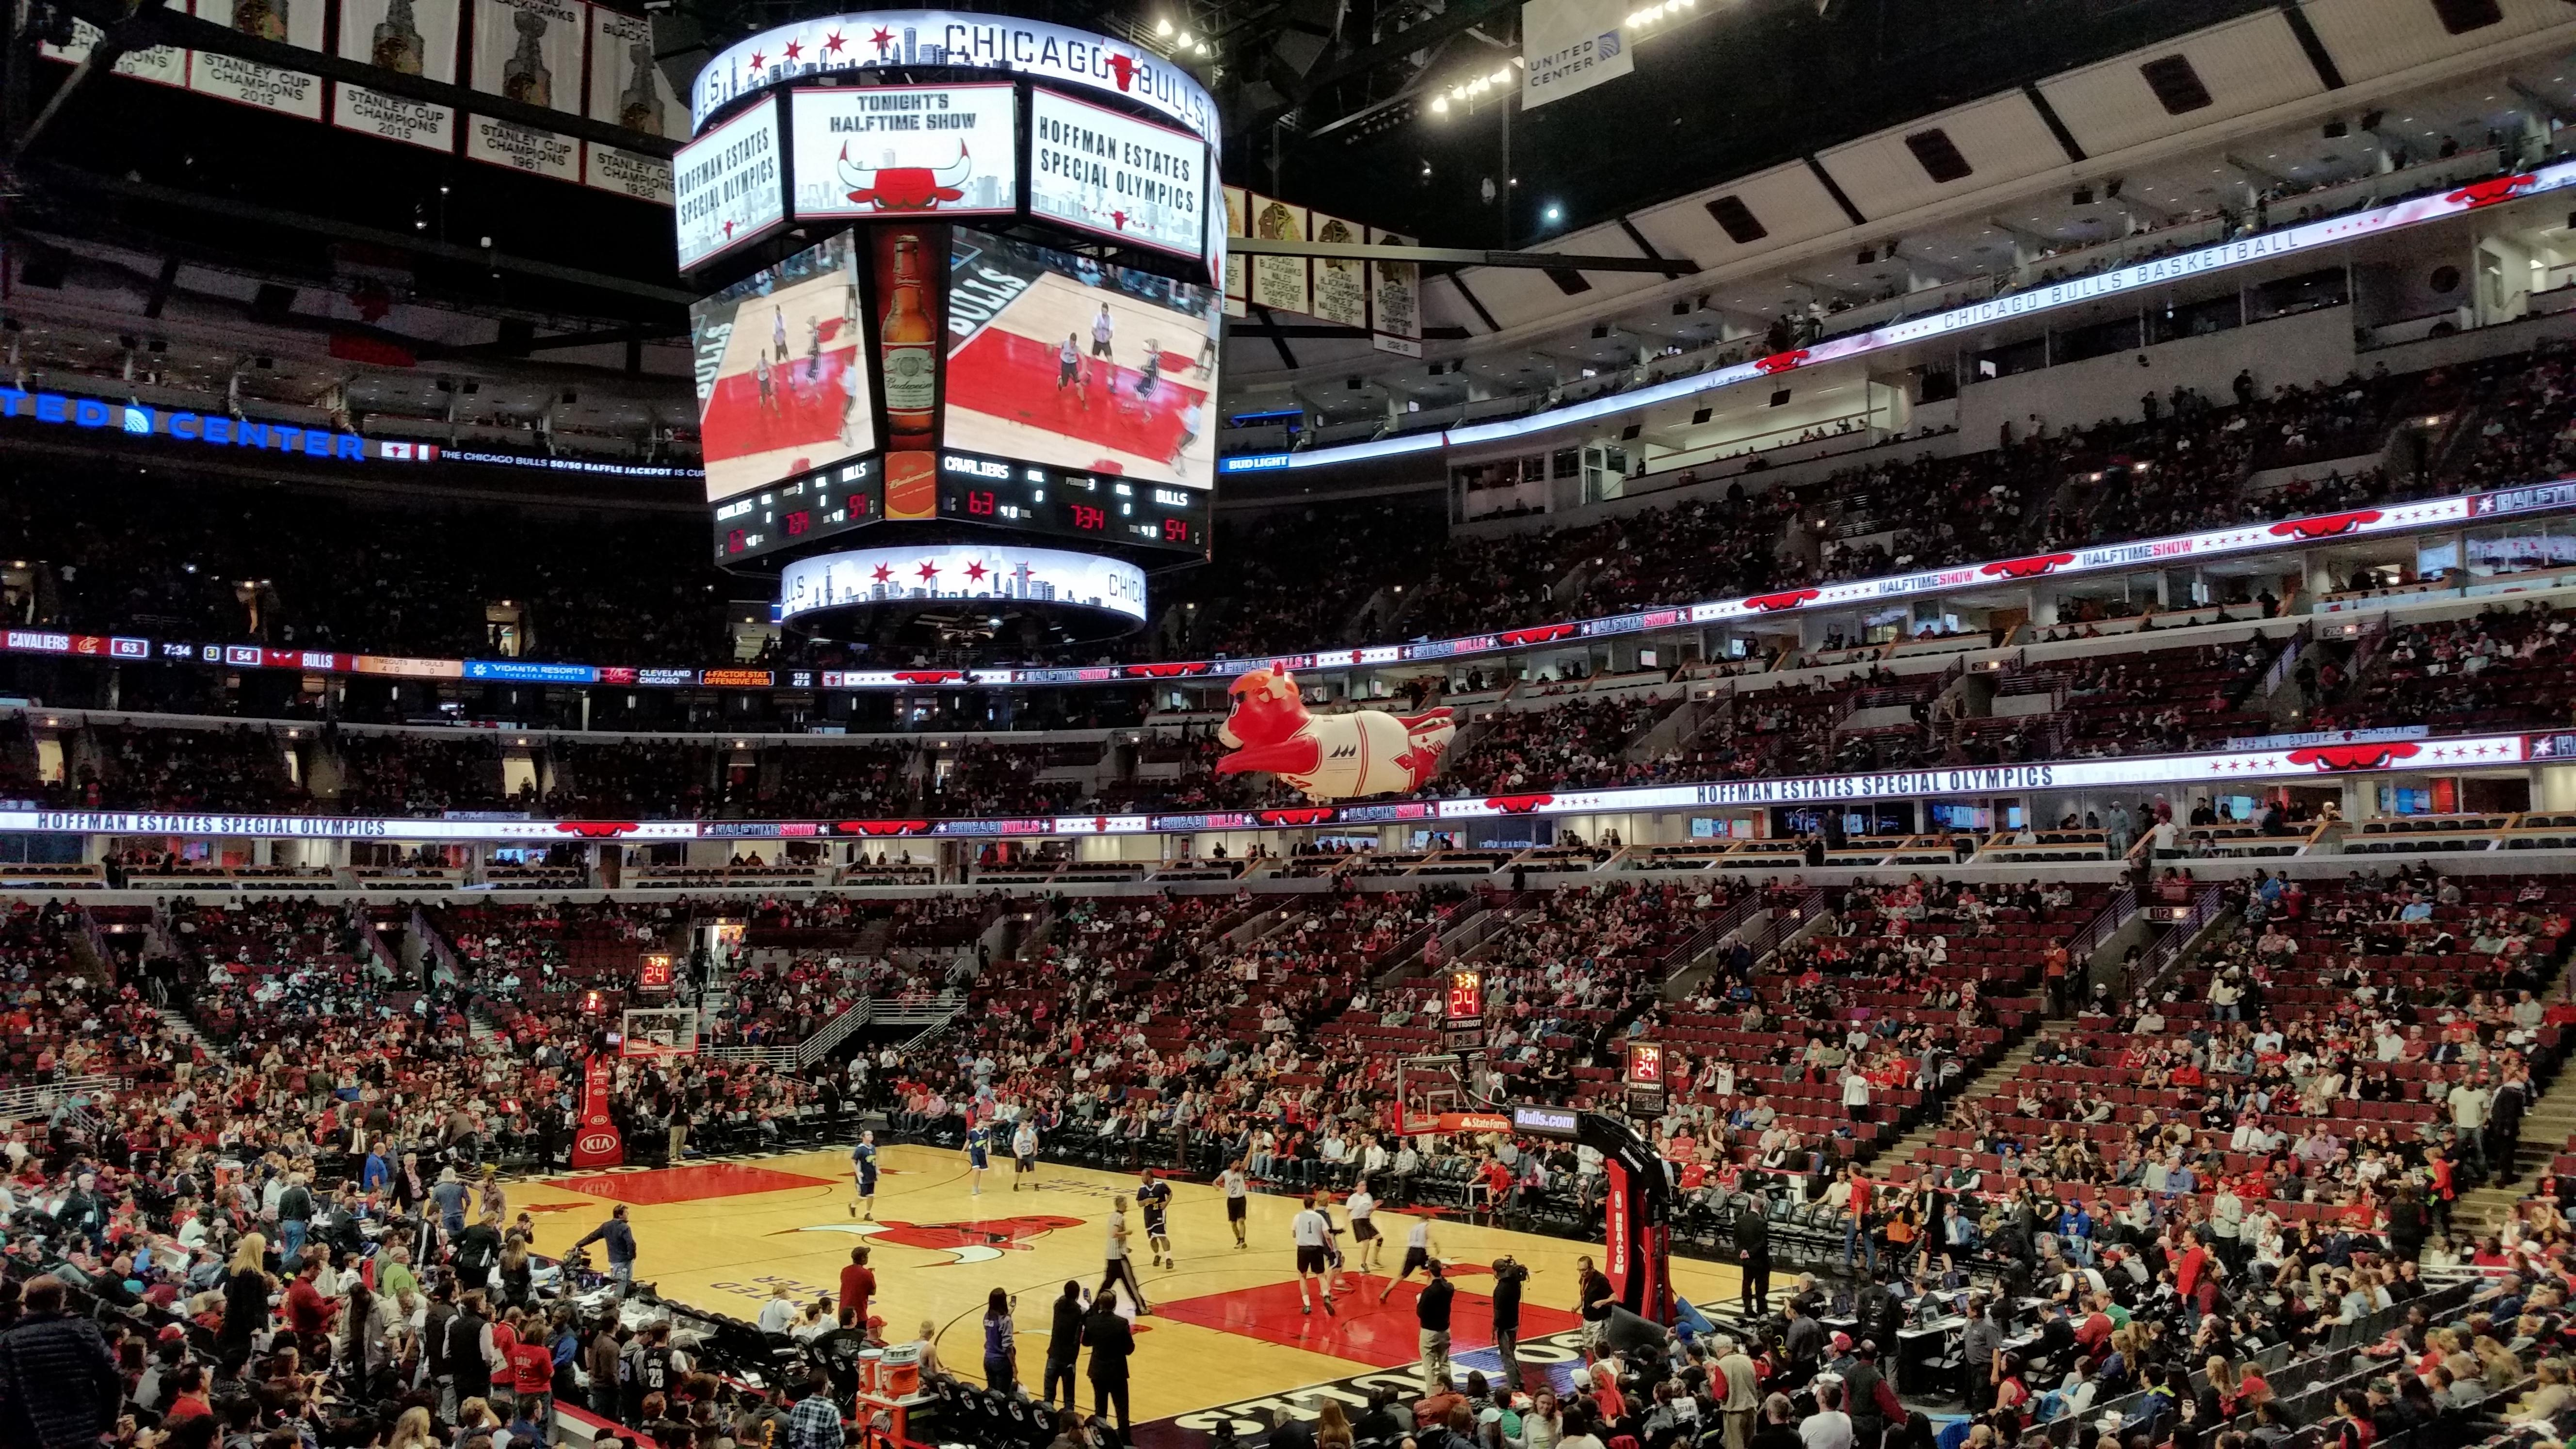 United Center Section 119 Row 17 Seat 19